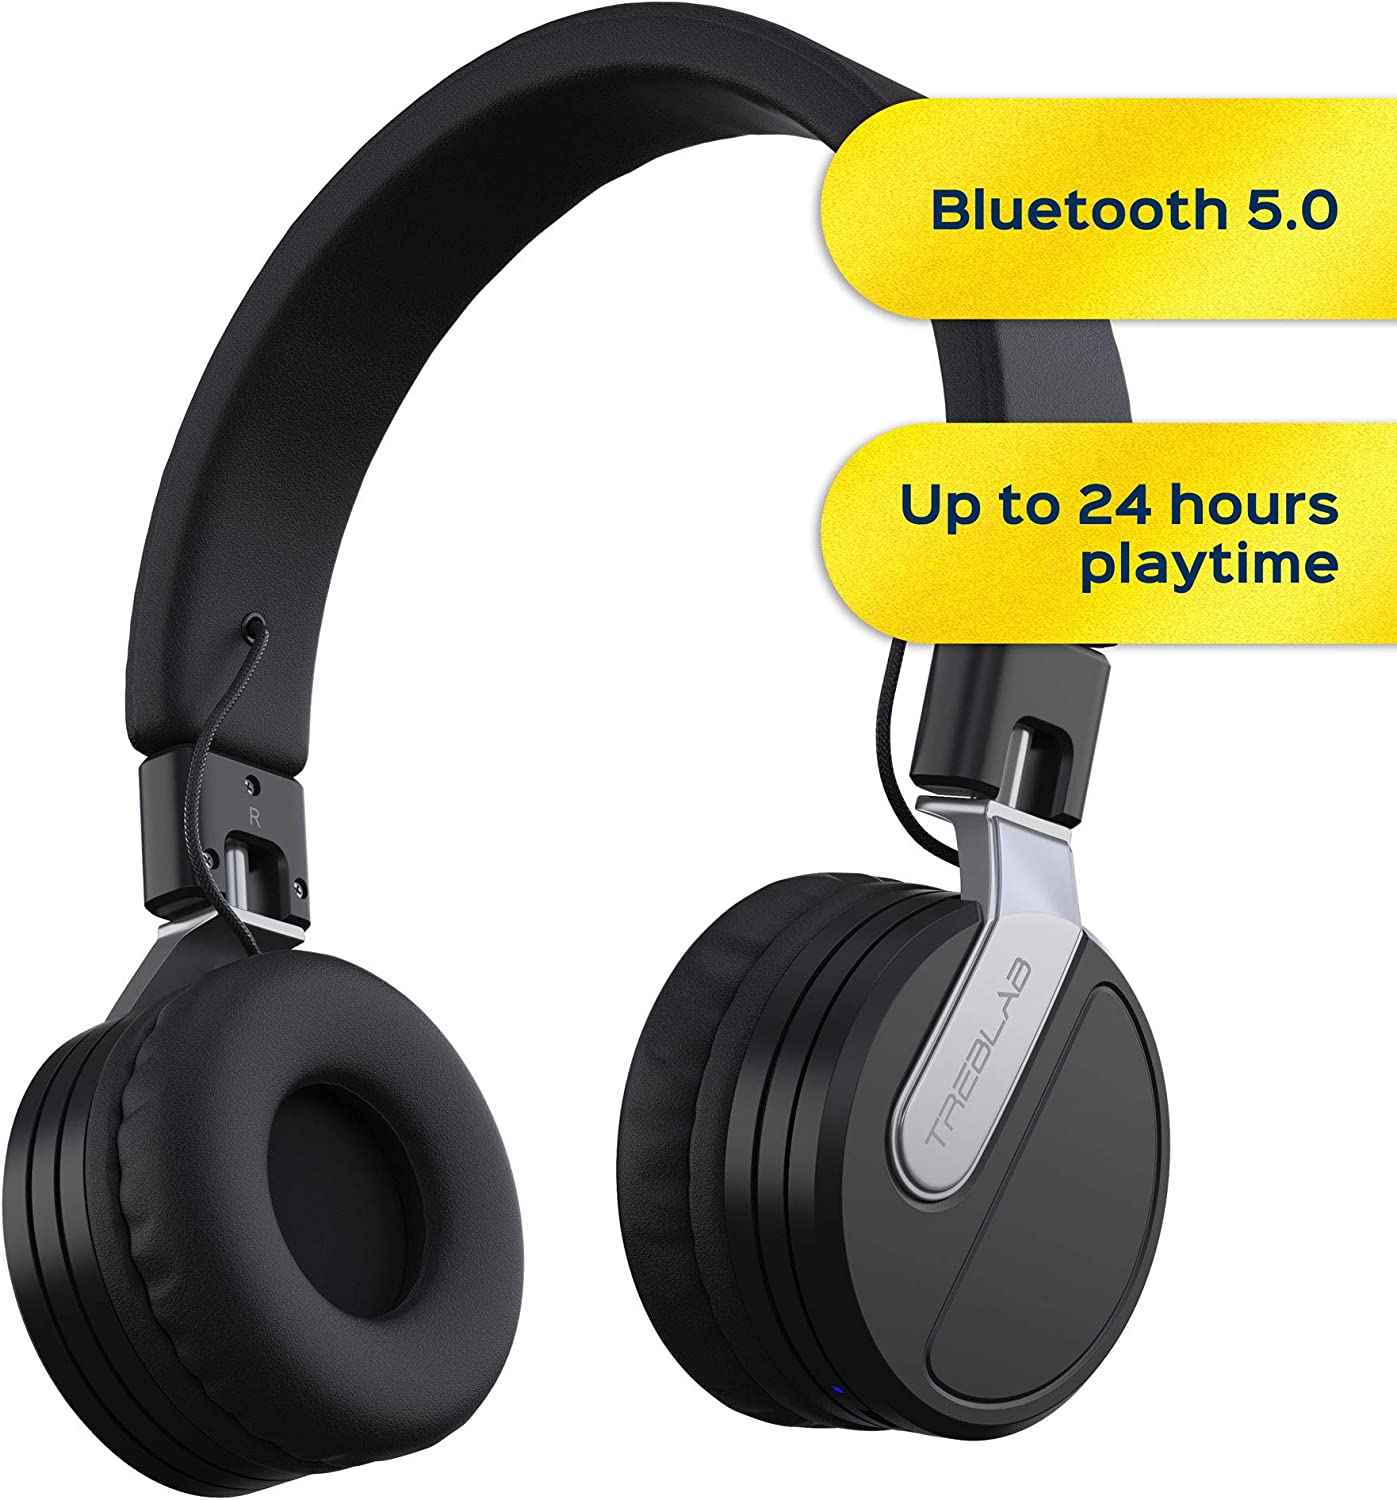 Amazon Com Treblab Bt5 Premium On Ear Wireless Headphones High Intensity Hd Sound W Bluetooth 5 0 Over Ear Microphone Waterproof Ipx4 For Sports Workout Travel Work 24h Play Passive Noise Cancelling Home Audio Theater